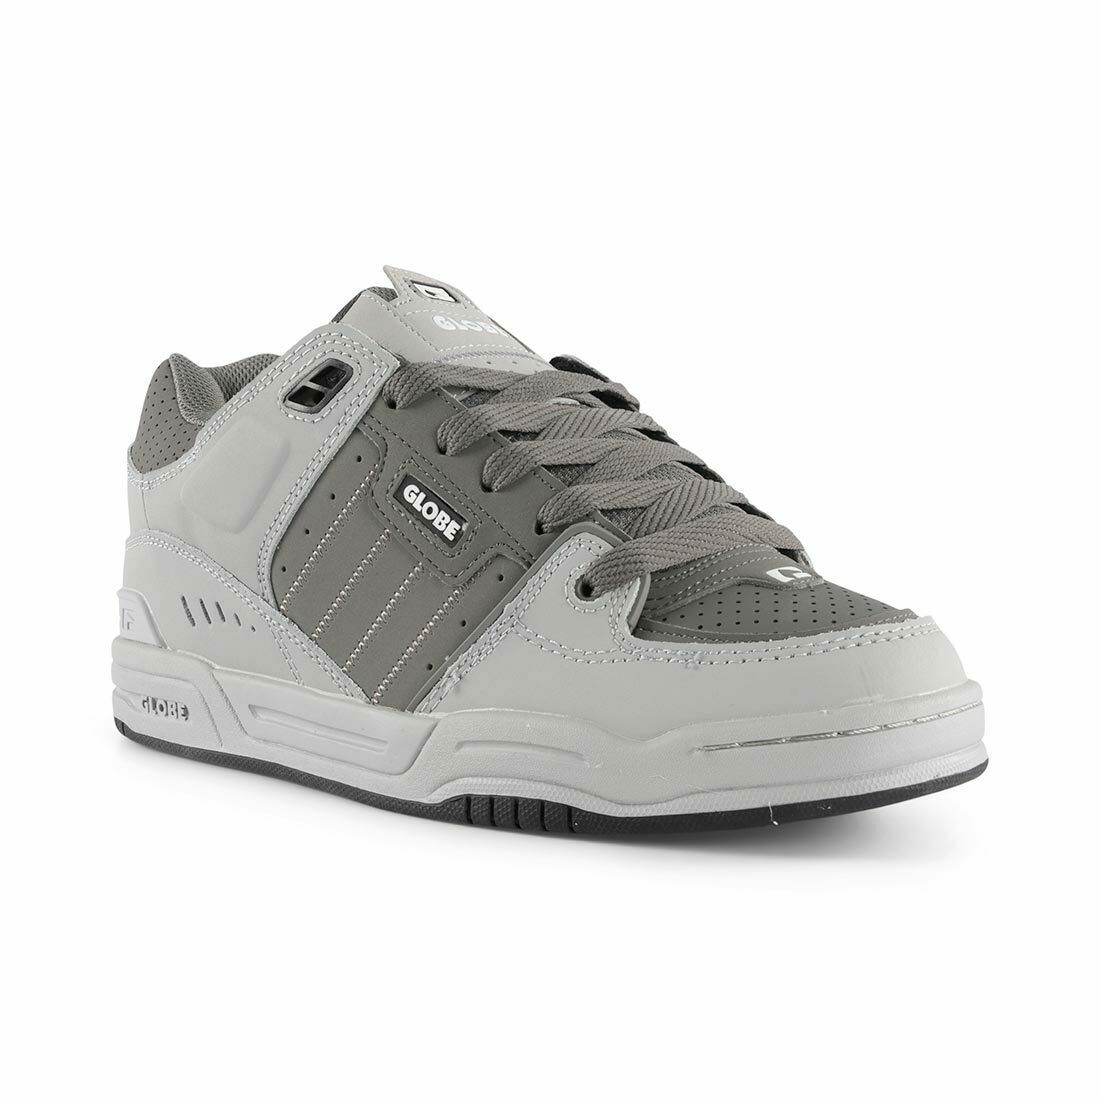 Globe Fusion shoes  - Charcoal   Highrise  excellent prices